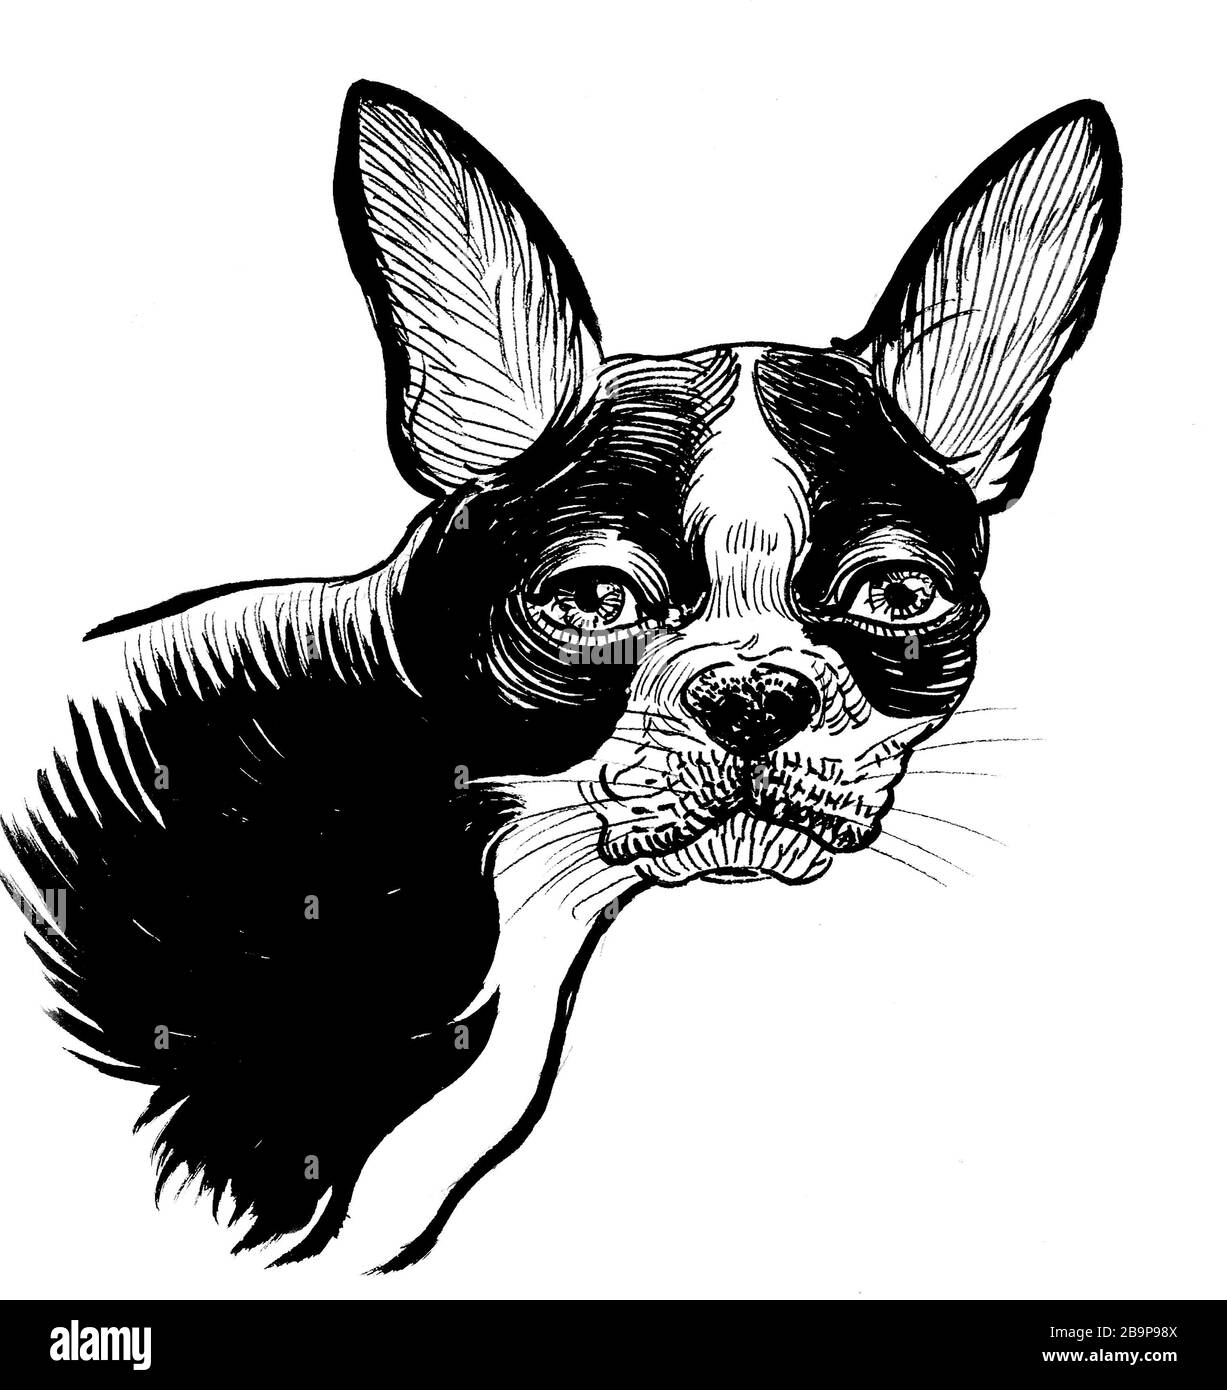 Cute Puppy Dog Ink Black And White Drawing Stock Photo Alamy